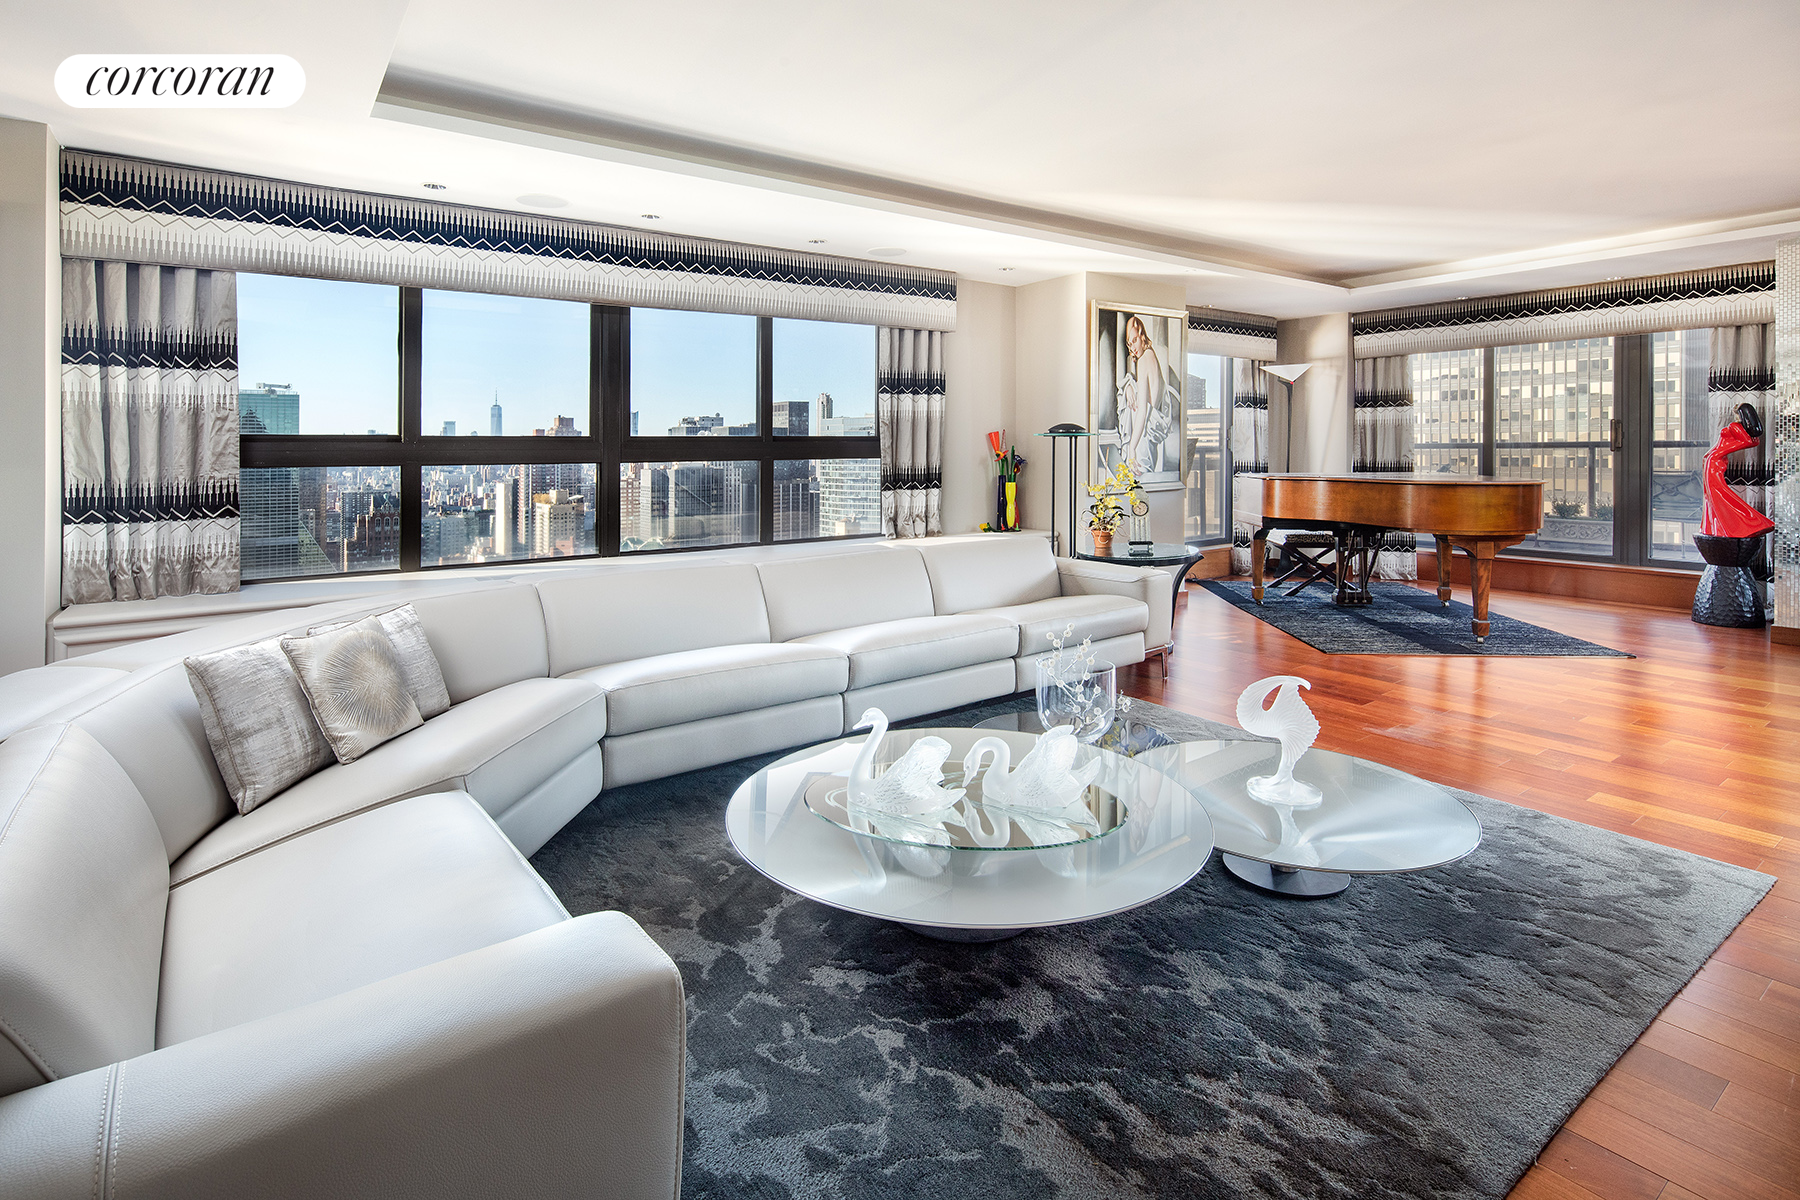 Bask in breathtaking panoramic views from two levels of wrap-around terraces at this rarely available, 50th floor penthouse duplex at 100 United Nations Plaza Condominium.Floating high in the sky in Midtown East's Turtle Bay neighborhood is this exceptional, mint condition 3 bedroom, 3 full and 2 half bathroom penthouse duplex boasting 2 sprawling wrap-around terraces - offering never-ending skyline and river views including such notables as One World Trade, Empire State Building, Chrysler Building, the Queensboro Bridge, East River and so much more. Spanning approximately 3,023 interior square feet and 1,113 of outdoor space, this duplex is ideally configured providing separate living, dining and entertaining areas from the upper floor's three private sleeping quarters.Upon entering the main level is the approximately 55' long gallery with unobstructed views to the west through its floor-to-ceiling windows. To the south, you will find a grand living and entertaining room with a corner exposure and access to the lower level balcony. A tray ceiling with recessed lighting, wet bar and concealed flat screen television complete this expansive space. Occupying the north side of this floor is the corner dining room from which you can also access the balcony to take in a sunny afternoon or glorious evening sunset. The large, windowed kitchen has a pass-through to the dining room for effortless entertaining and features custom cabinetry, granite countertops, marble wall tile and a suite of professional-grade appliances from Viking, Wolf and Sub-Zero, including a pair of dishwashers and full size wine refrigerator. Just beyond the kitchen is a stacked washer and dryer as well as a custom designed, windowed home office (which could also be utilized as a staff room) with an en suite powder room.Ascend to the second floor and you will find a guest powder room, corner master suite and two more bedrooms, each with its own en suite windowed bathroom. The private master suite enjoy